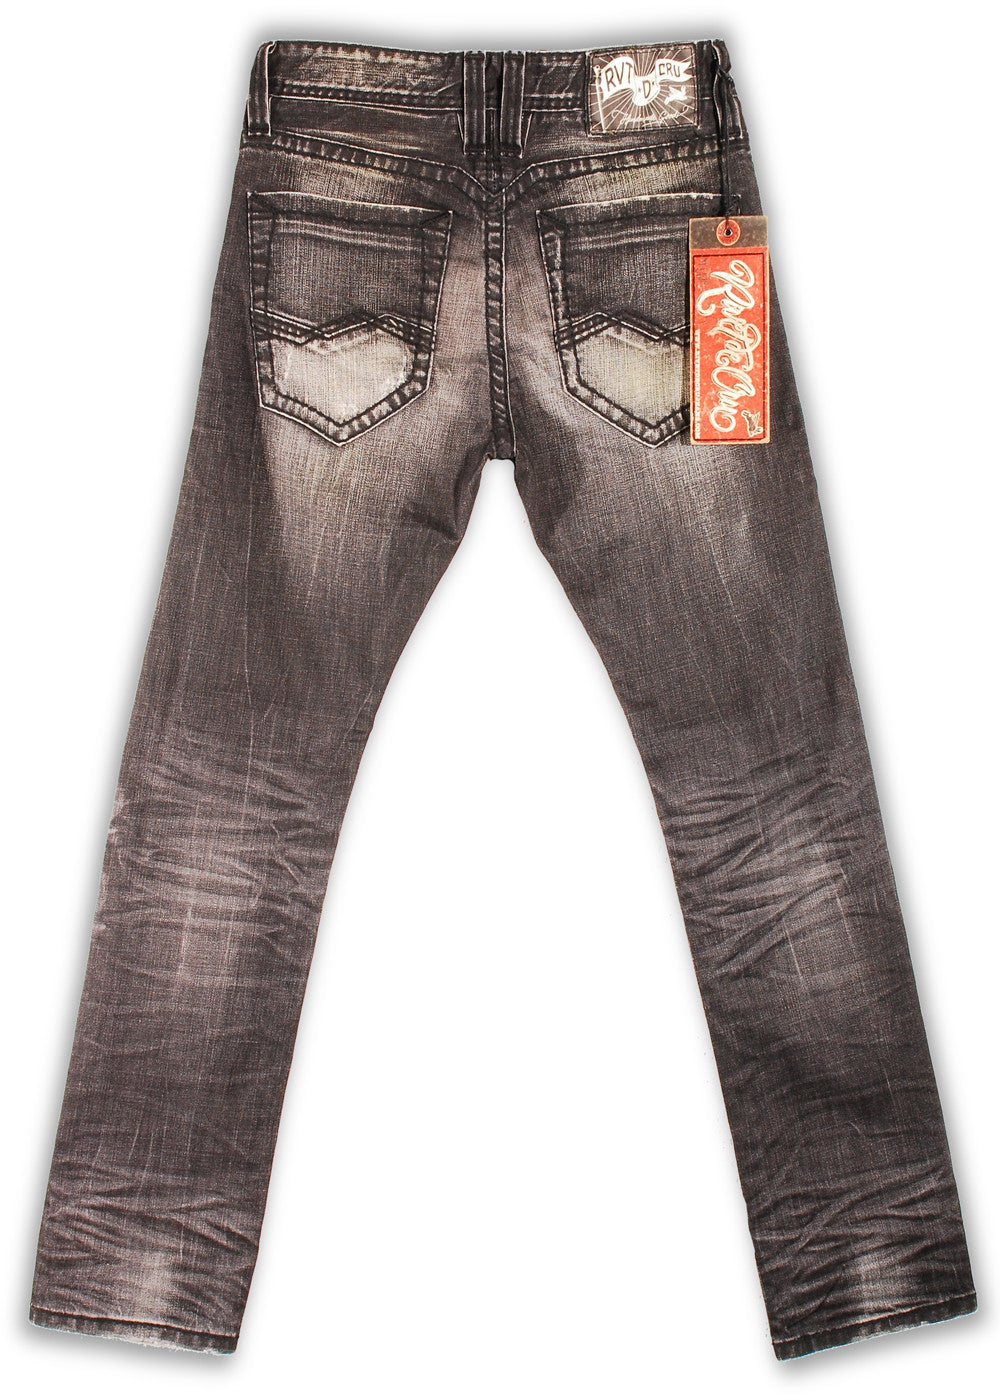 151-143M Tarmac Wash Jean - Rivet De Cru Jeans - Premium Denim - Mens Fashion - Mens Clothing - Mens Jeans - Mens Denim - 2